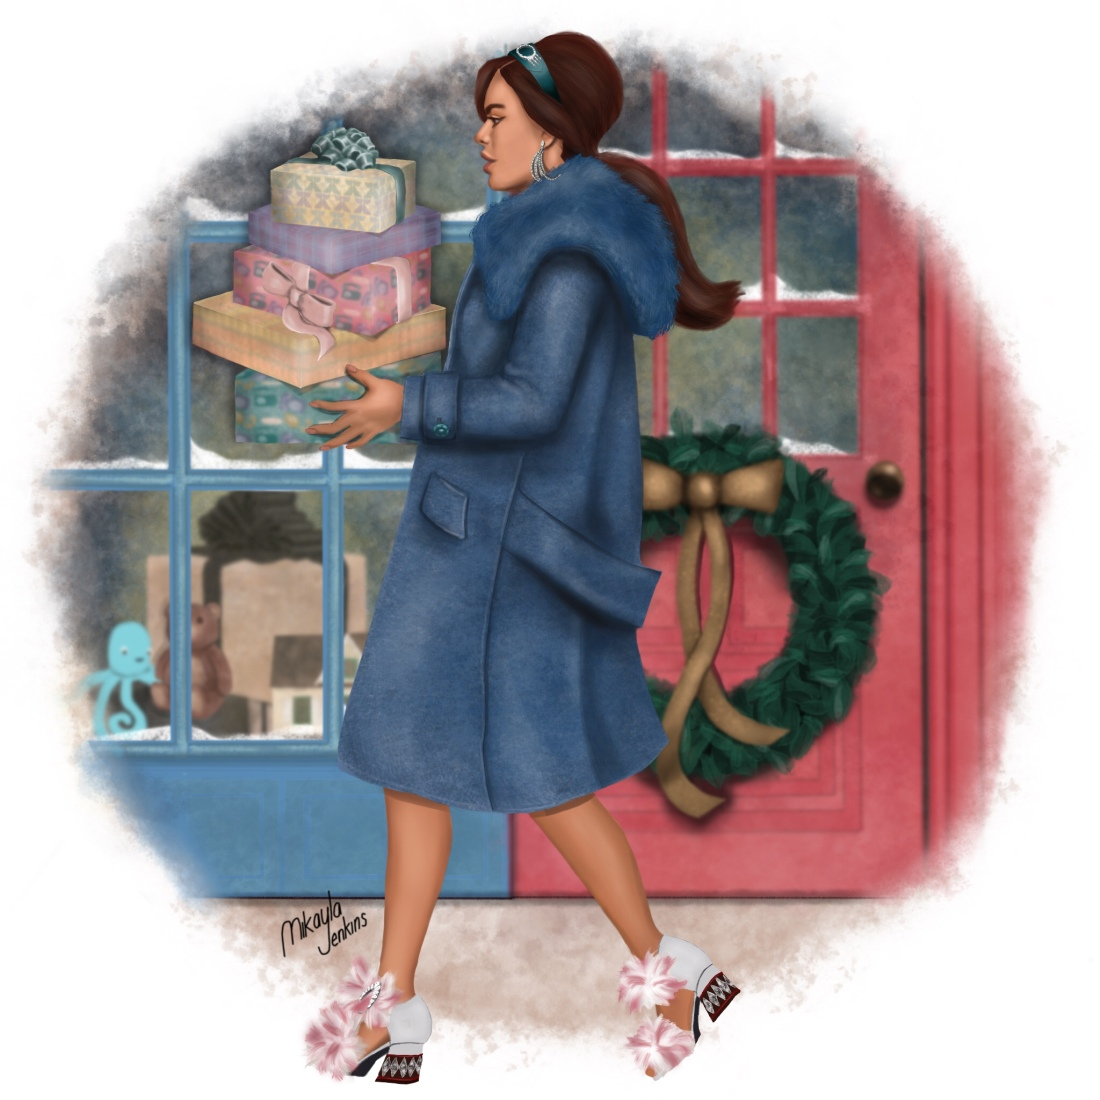 Sublime Cravings - Fashion Illustration Christmas Card